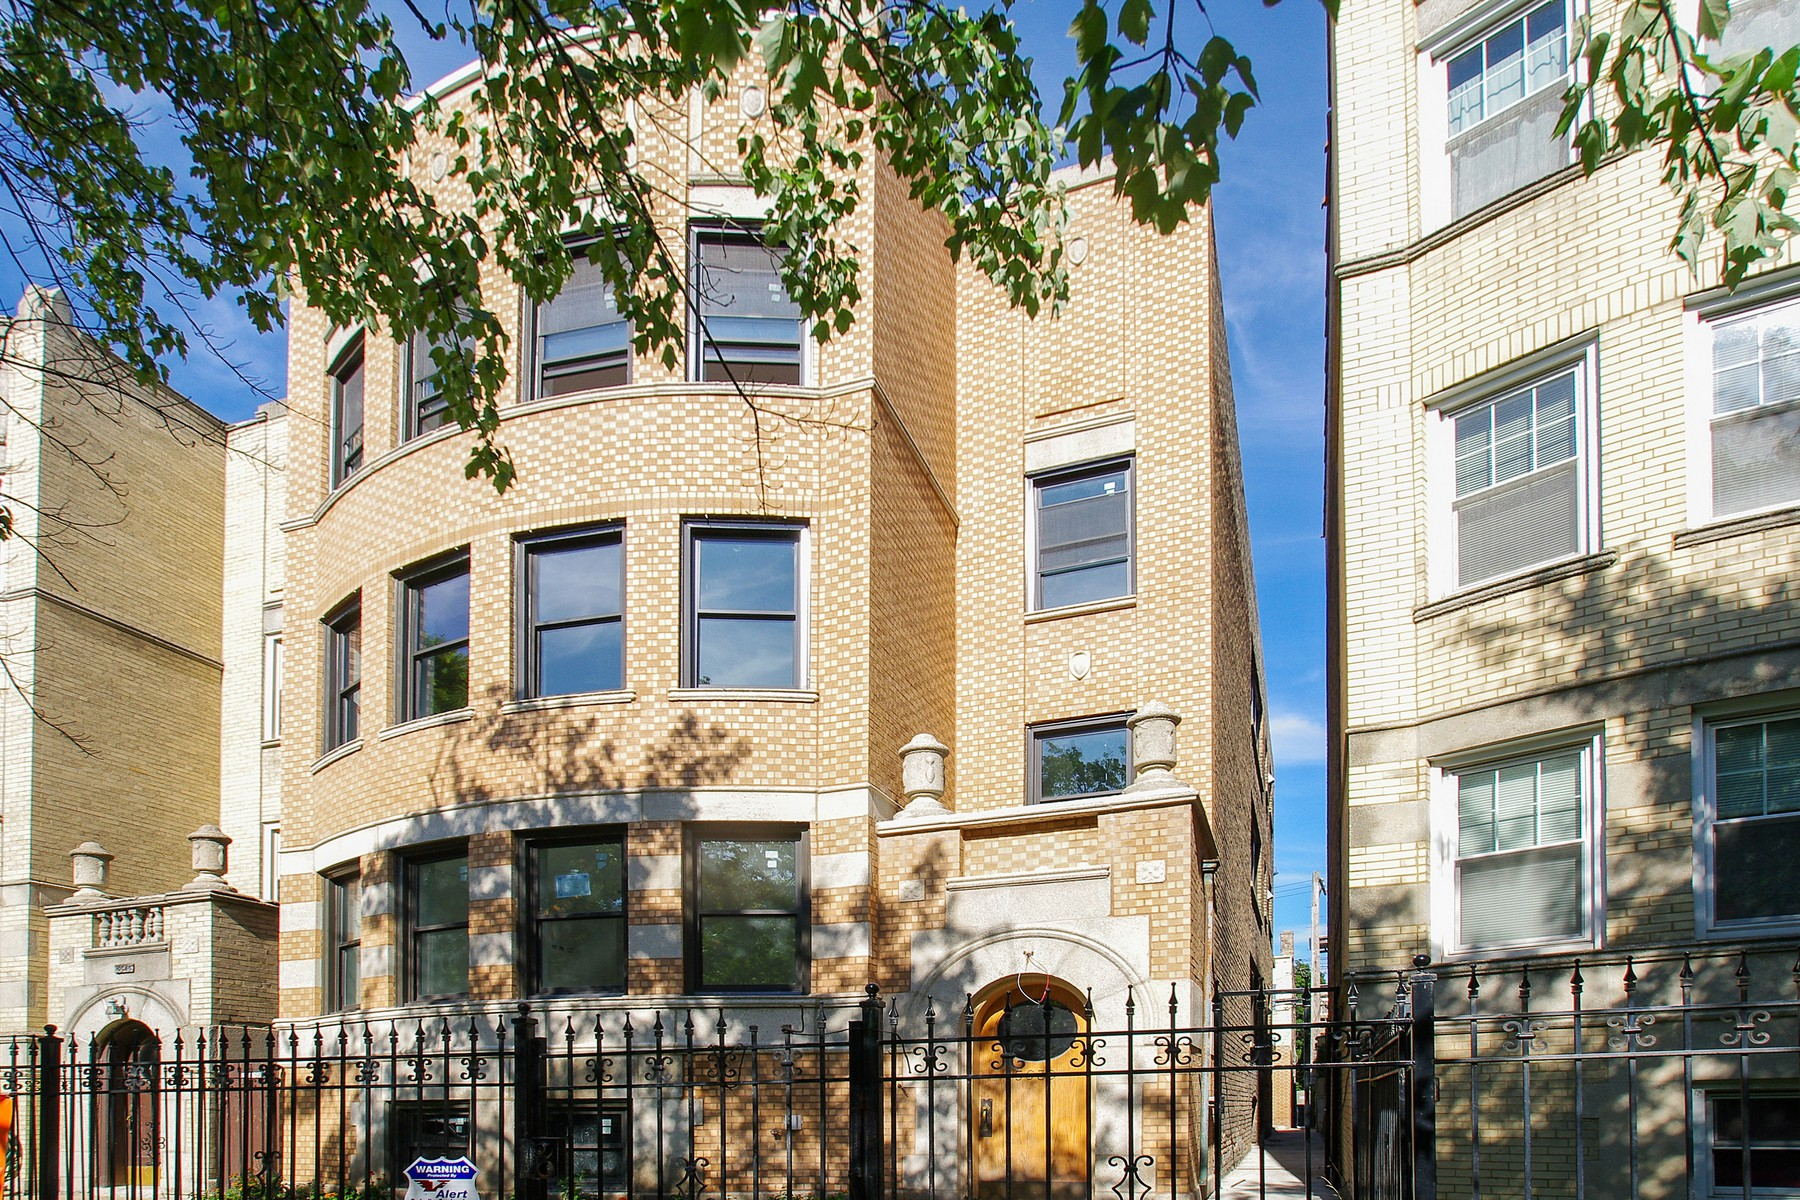 Condominium for Sale at All New Unit in Brick 3-Flat 5639 N Christiana Avenue Unit 1 Chicago, Illinois, 60659 United States